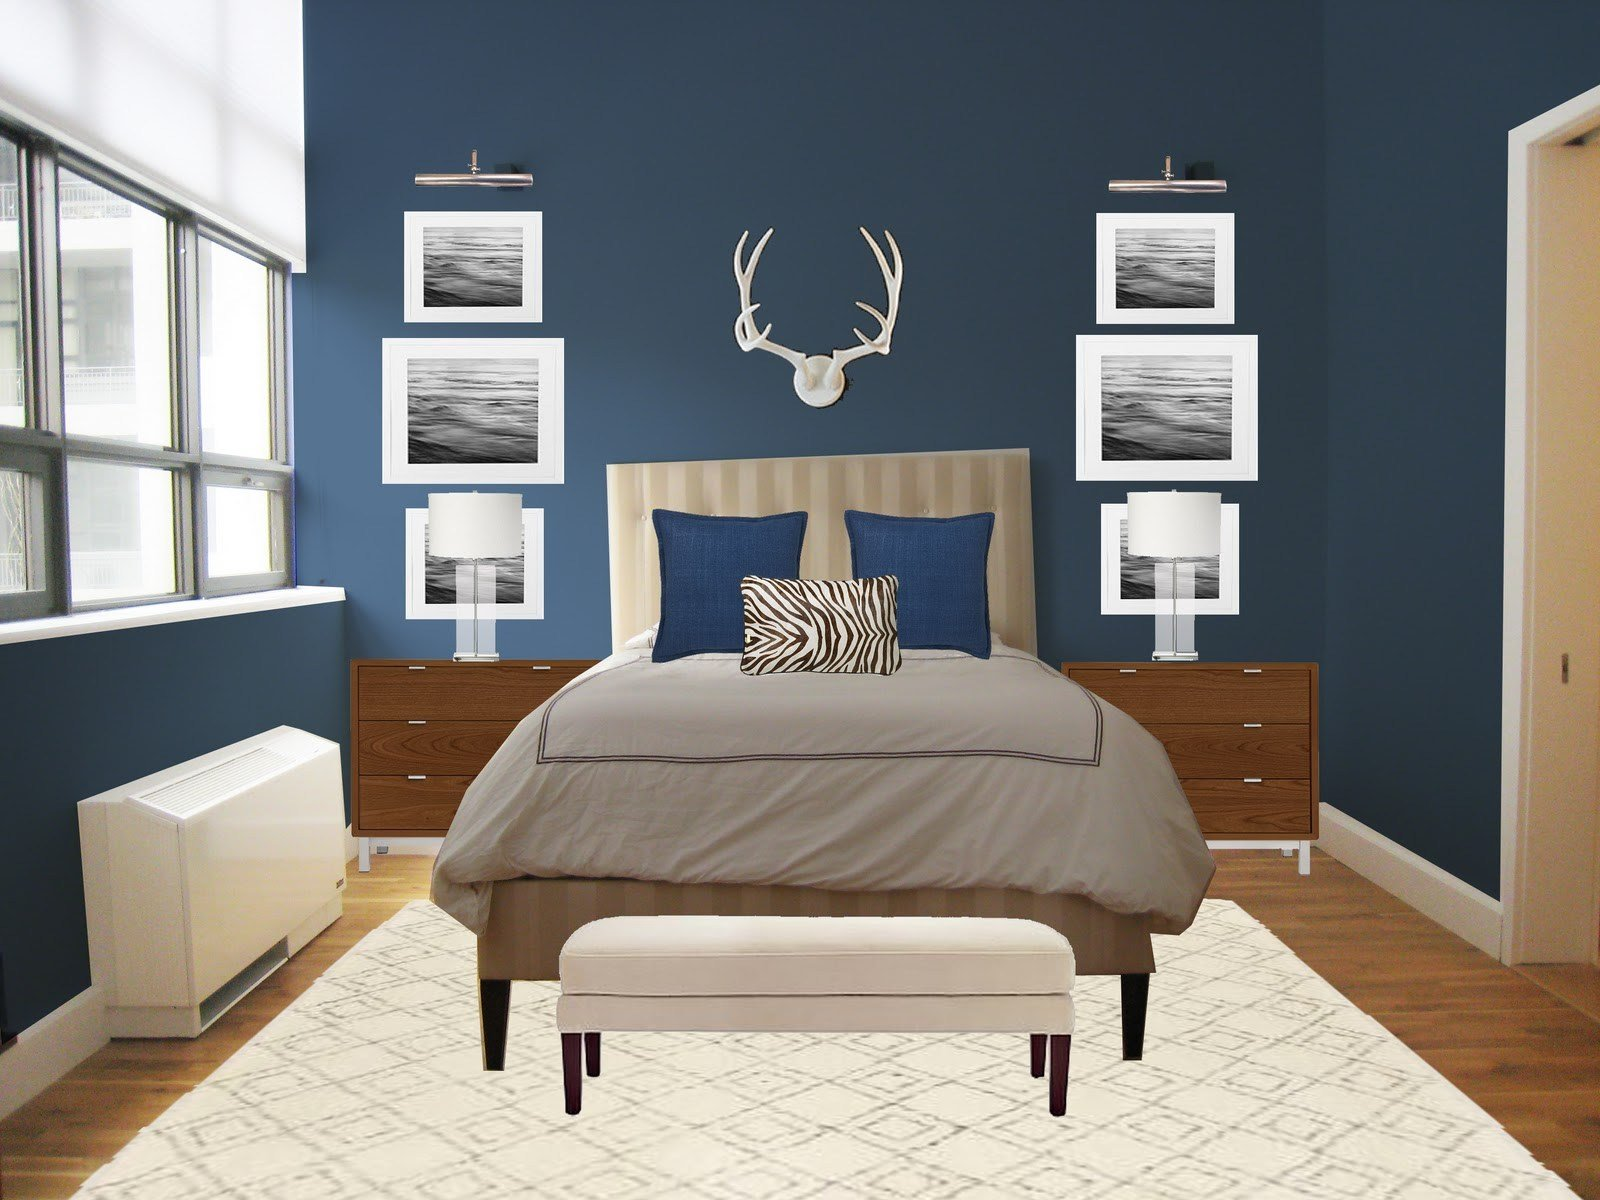 Best Top 10 Paint Ideas For Bedroom 2017 Theydesign Net Theydesign Net With Pictures